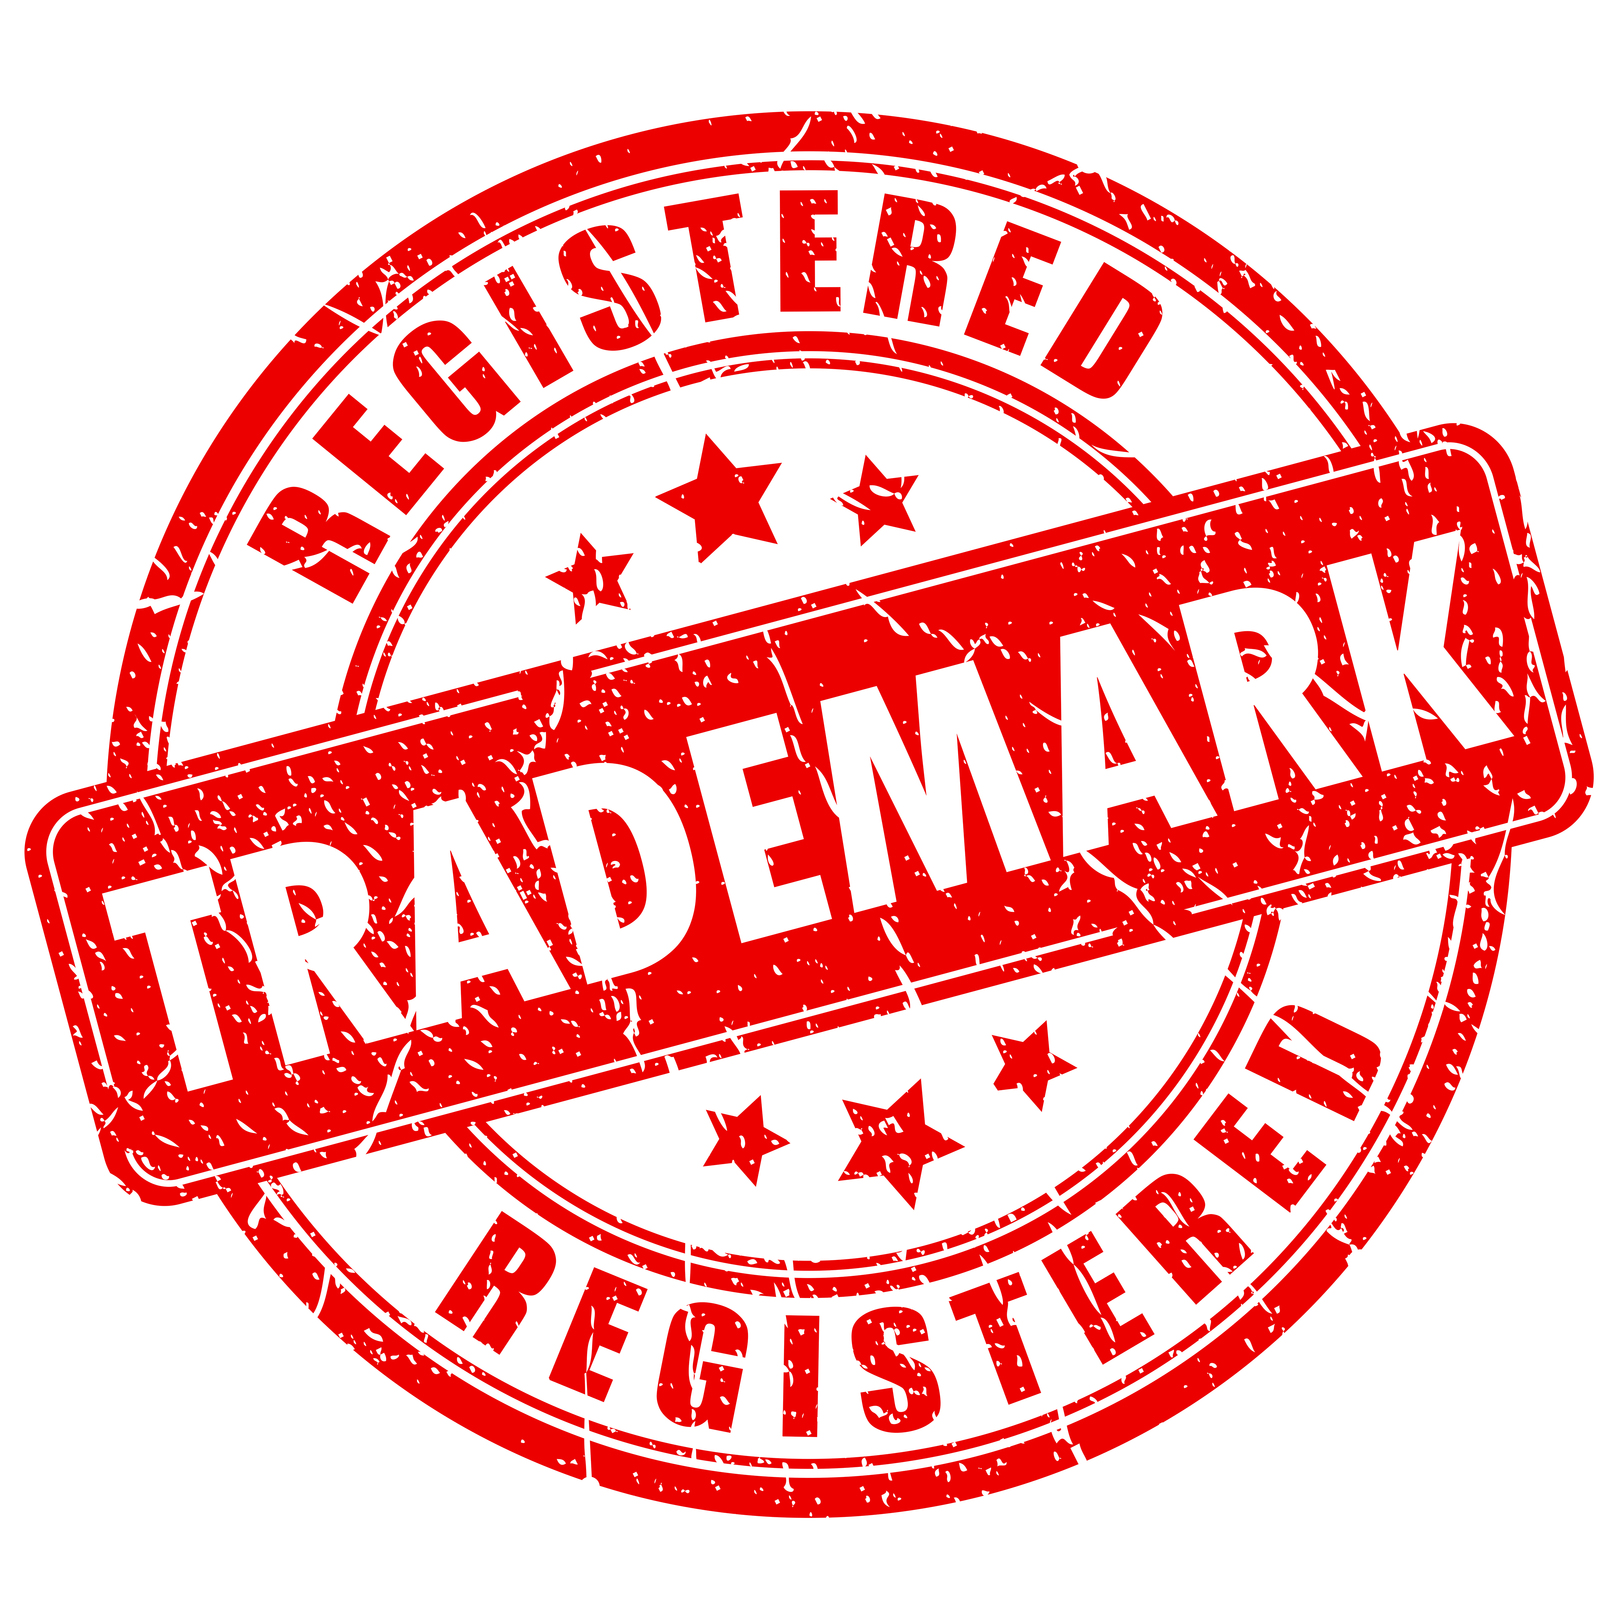 United States Supreme Court Rules That Lanham Act's Prohibition on Registration of Immoral or Scandalous Trademarks Violates the First Amendment